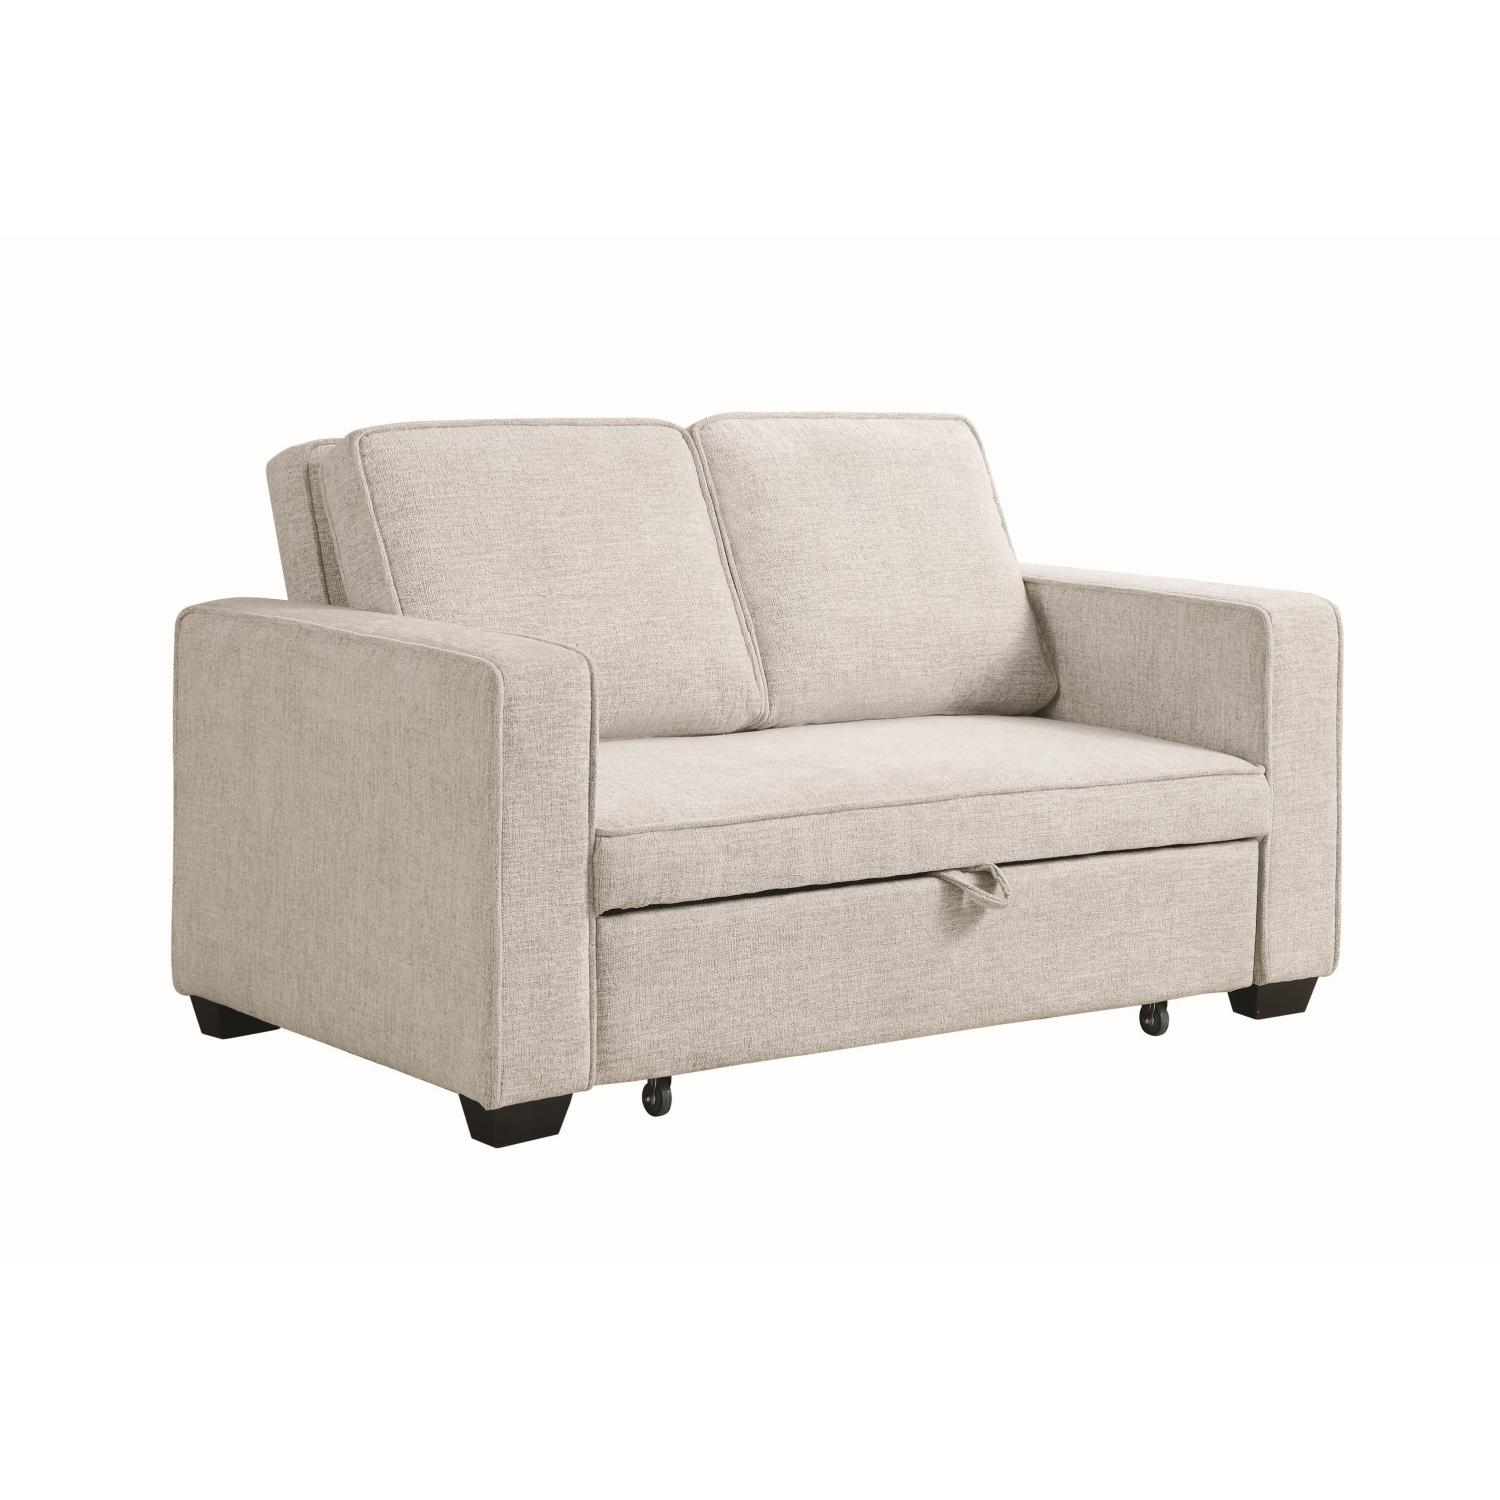 Compact Sofabed in Beige Chenille Fabric w/ Pull-Out Sleeper - image-3